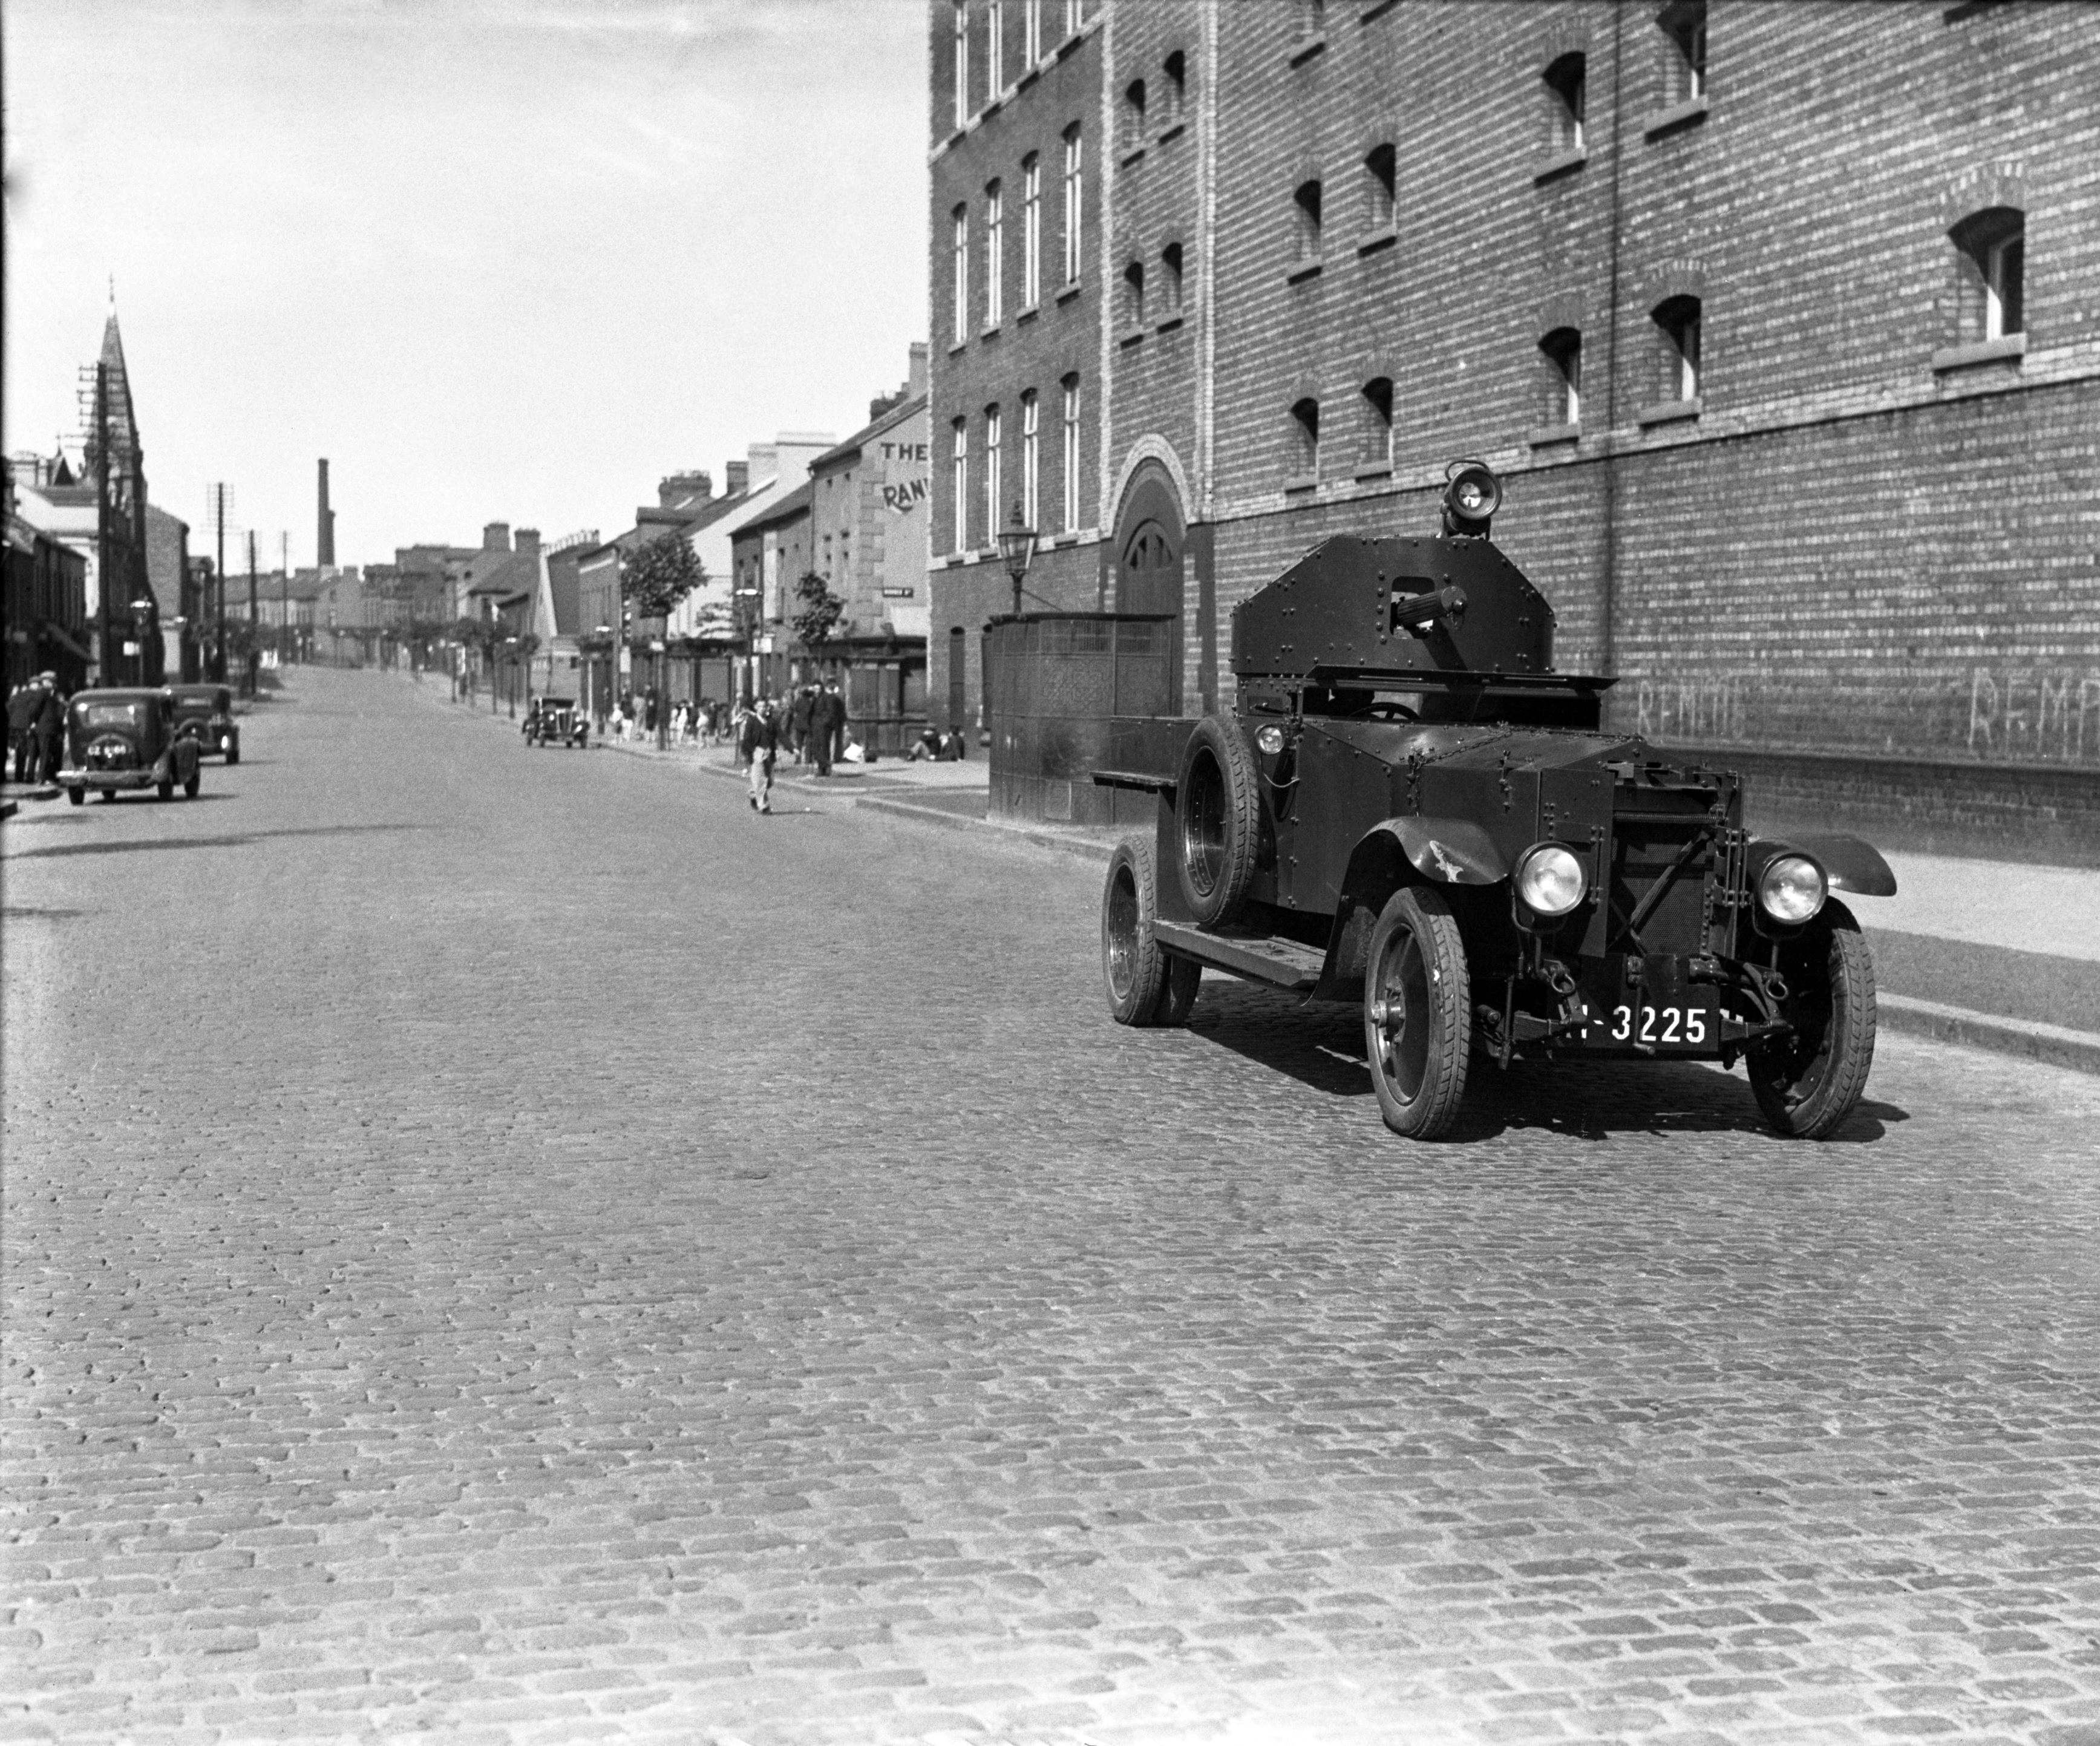 An armoured car progressing along York Street, Belfast on July 14, 1935 when rioting between Unionists and Nationalists flared up. (AP Photo/BEAD)